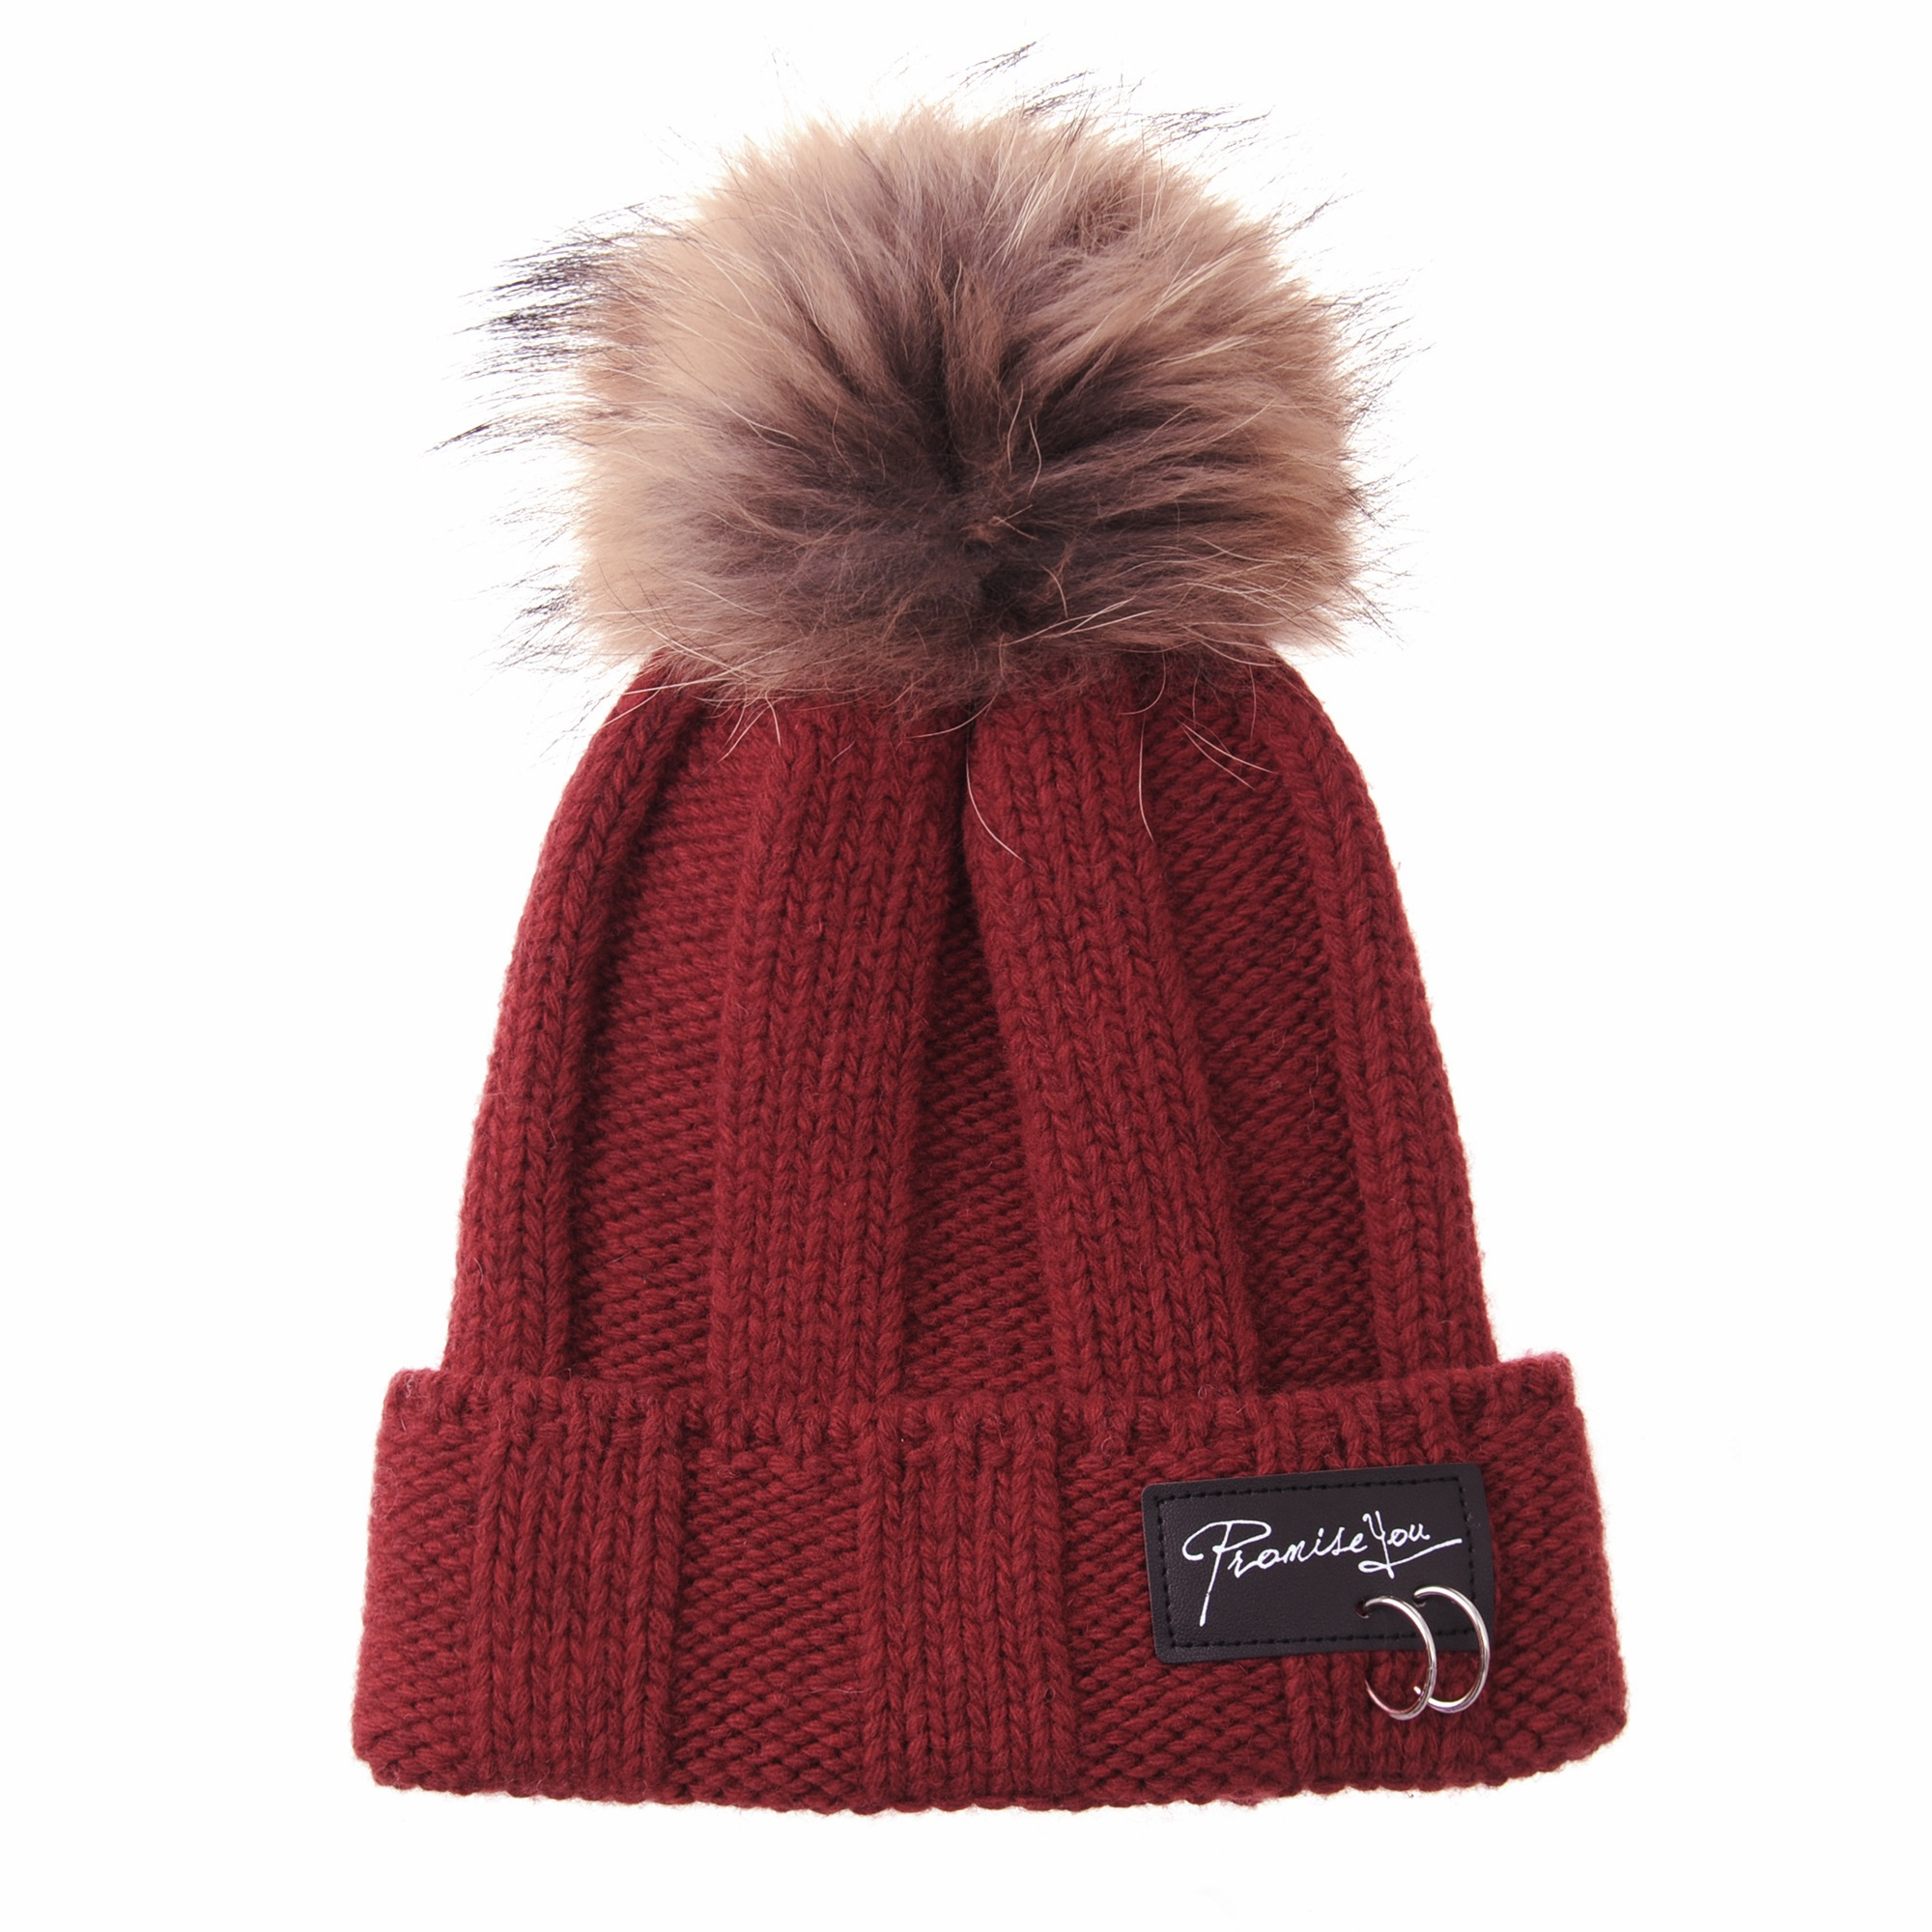 801319418fd WITHMOONS Knitted Real Fur Pom Pom Beanie Hat Slouchy NC5838 (Black) -  Walmart.com